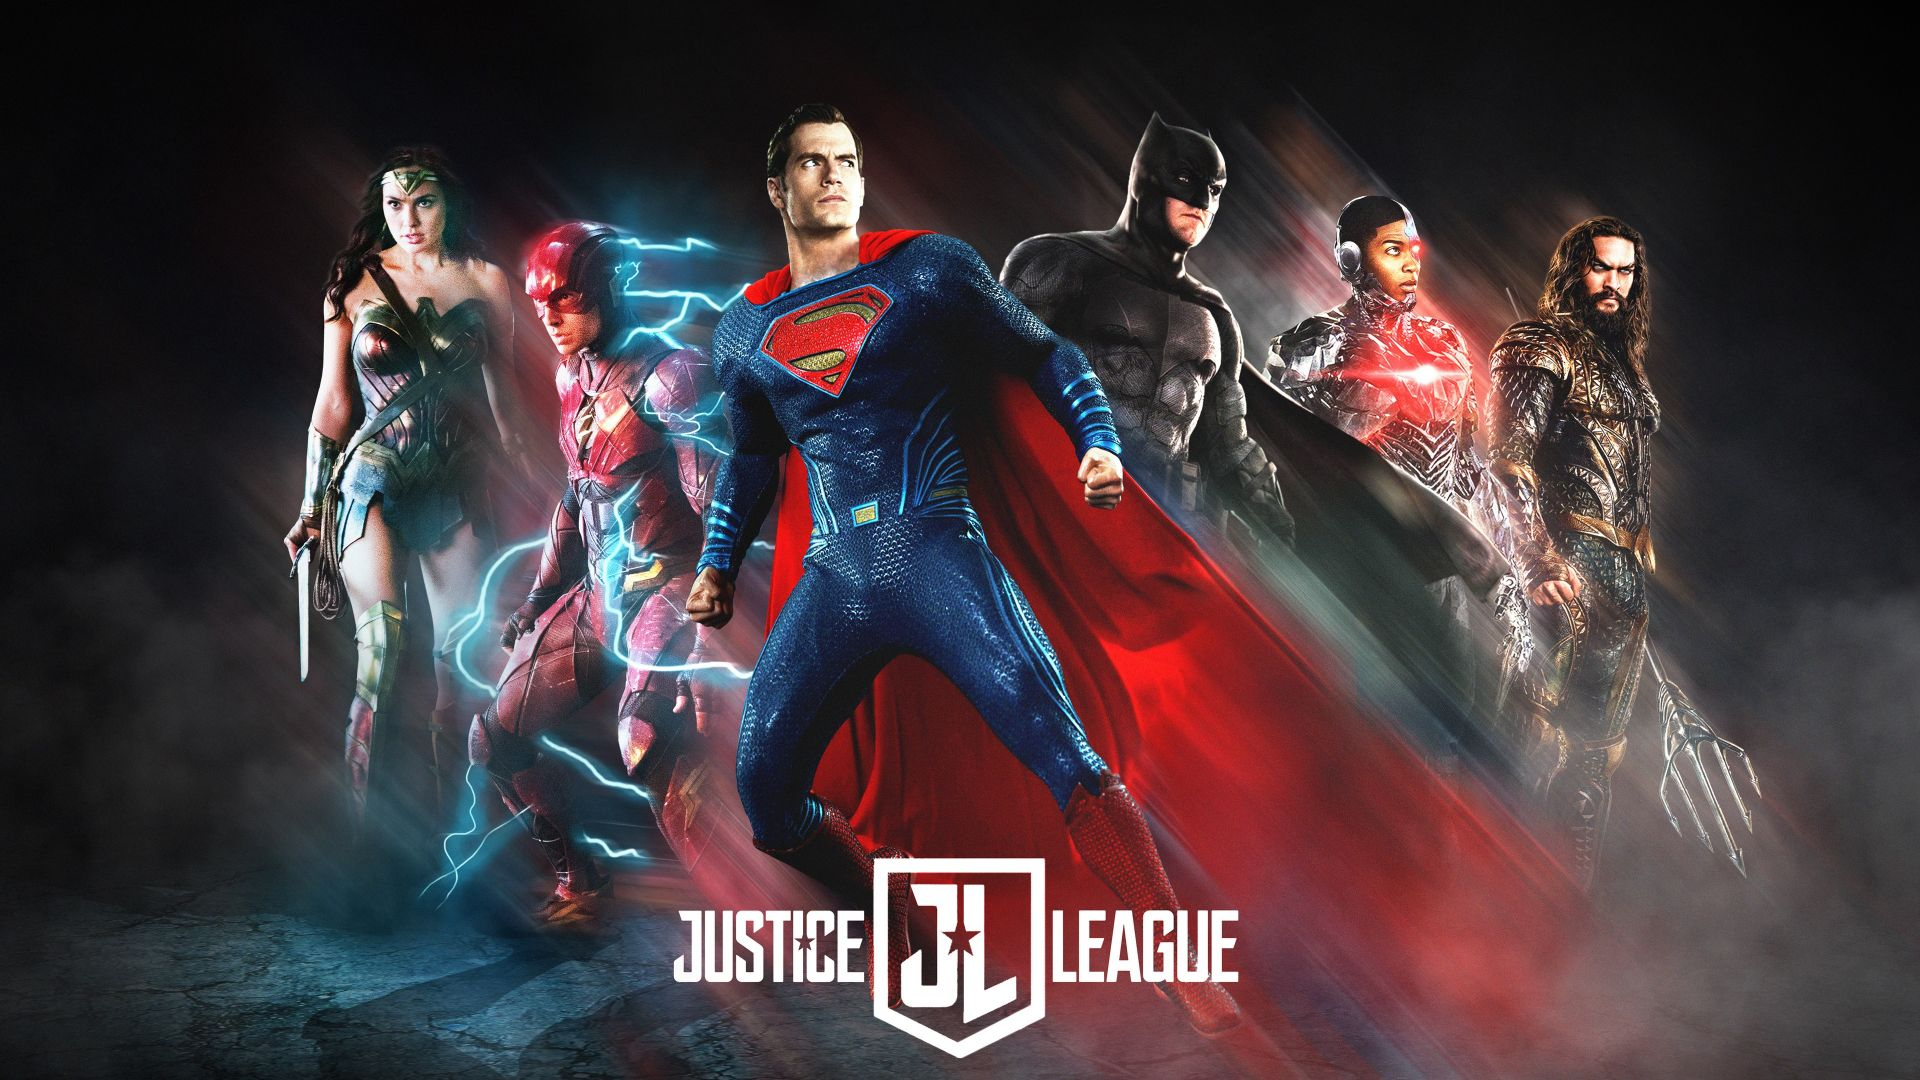 Zack Snyder's Justice League is releasing on March 18